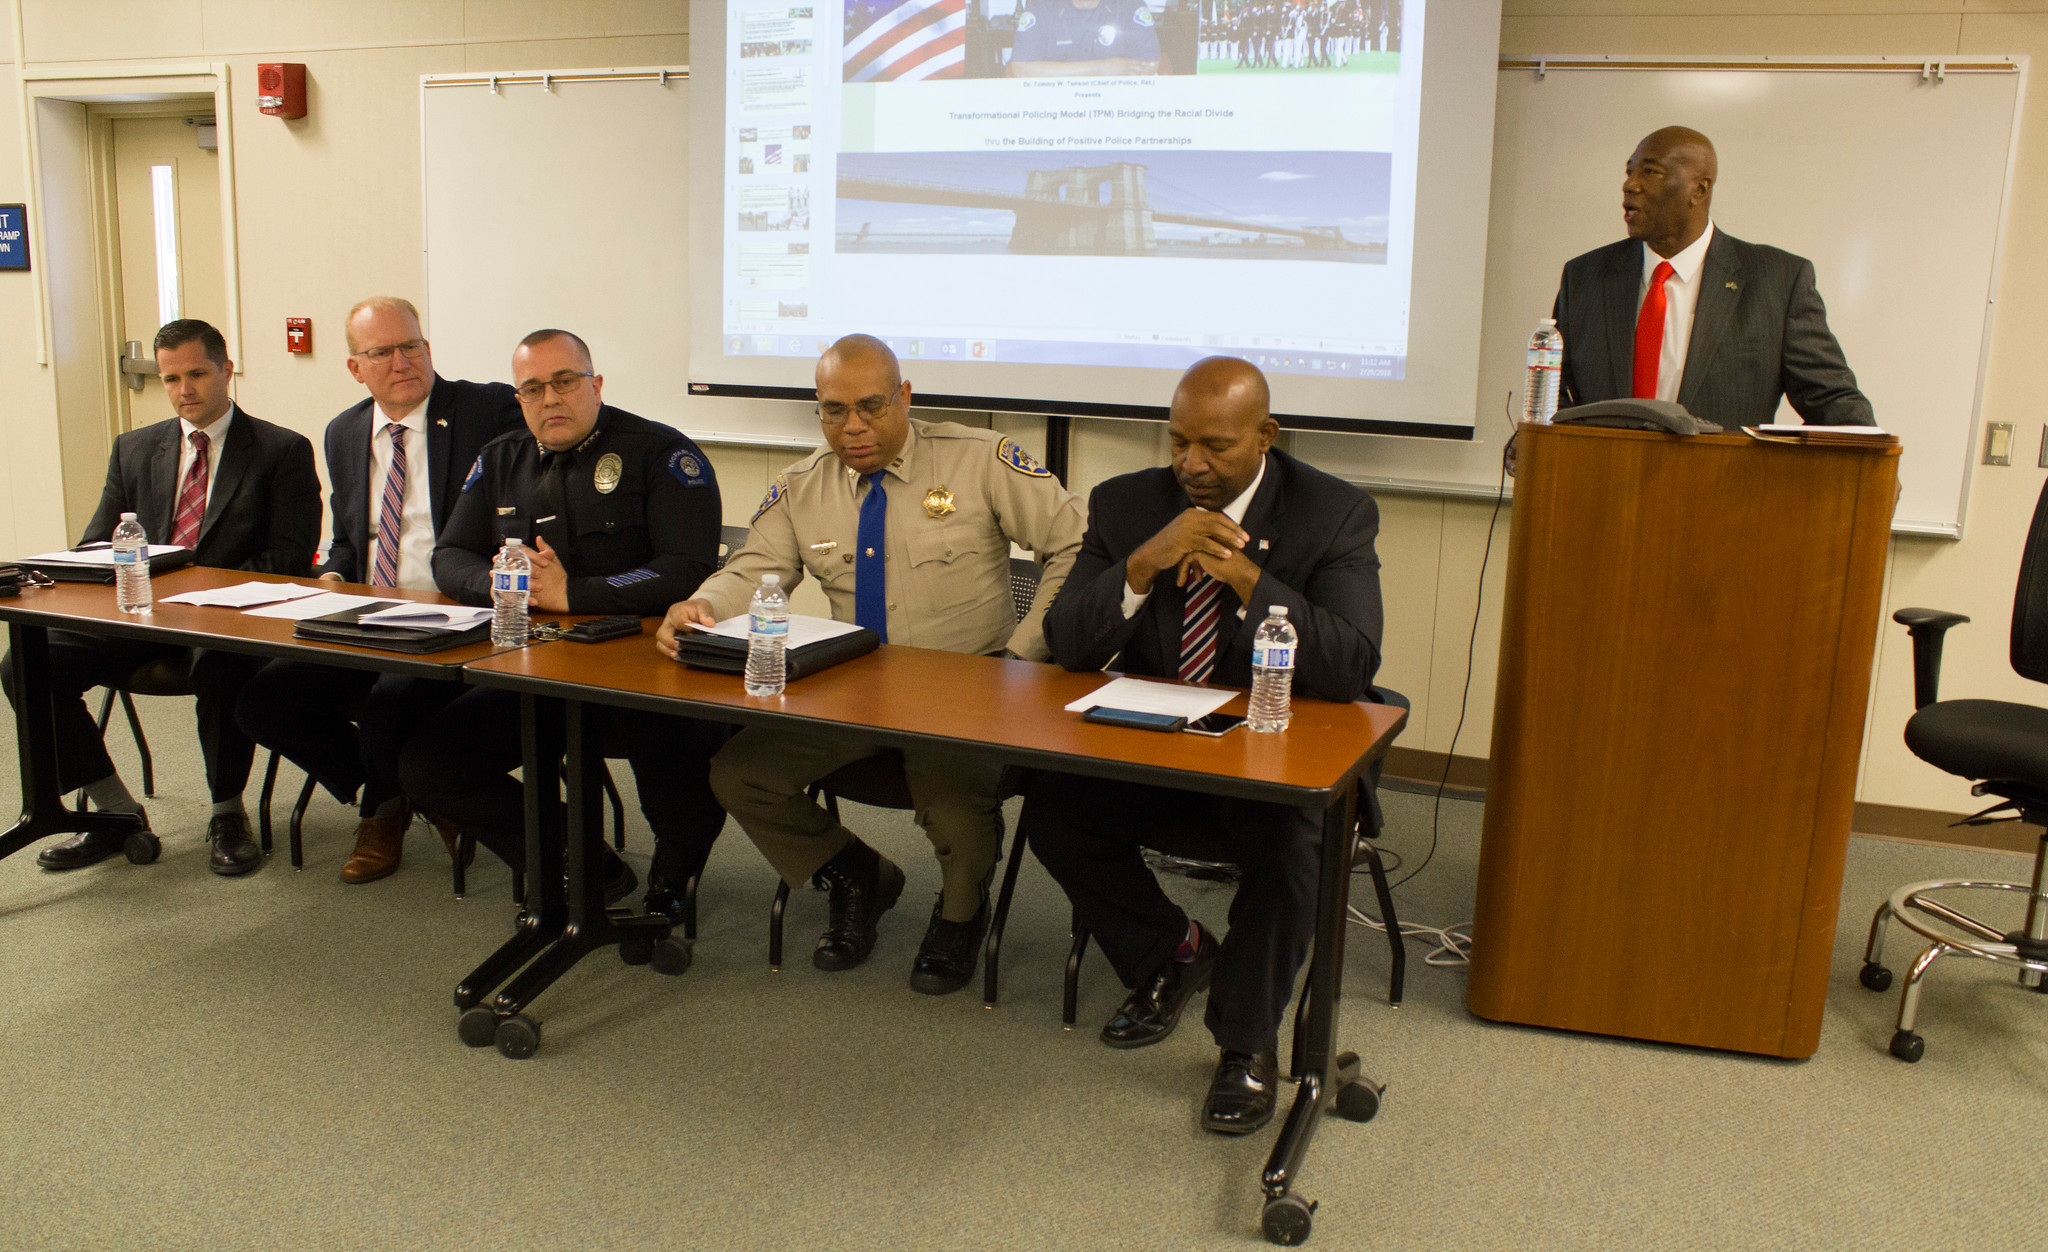 left to right FBI Special Agent Bennett O. Scott, Kern County Assistant District Attorney Scott Spielman, McFarland Police Department Chief Scot Kimble, CHP Commander Ron Seldon, Bakersf